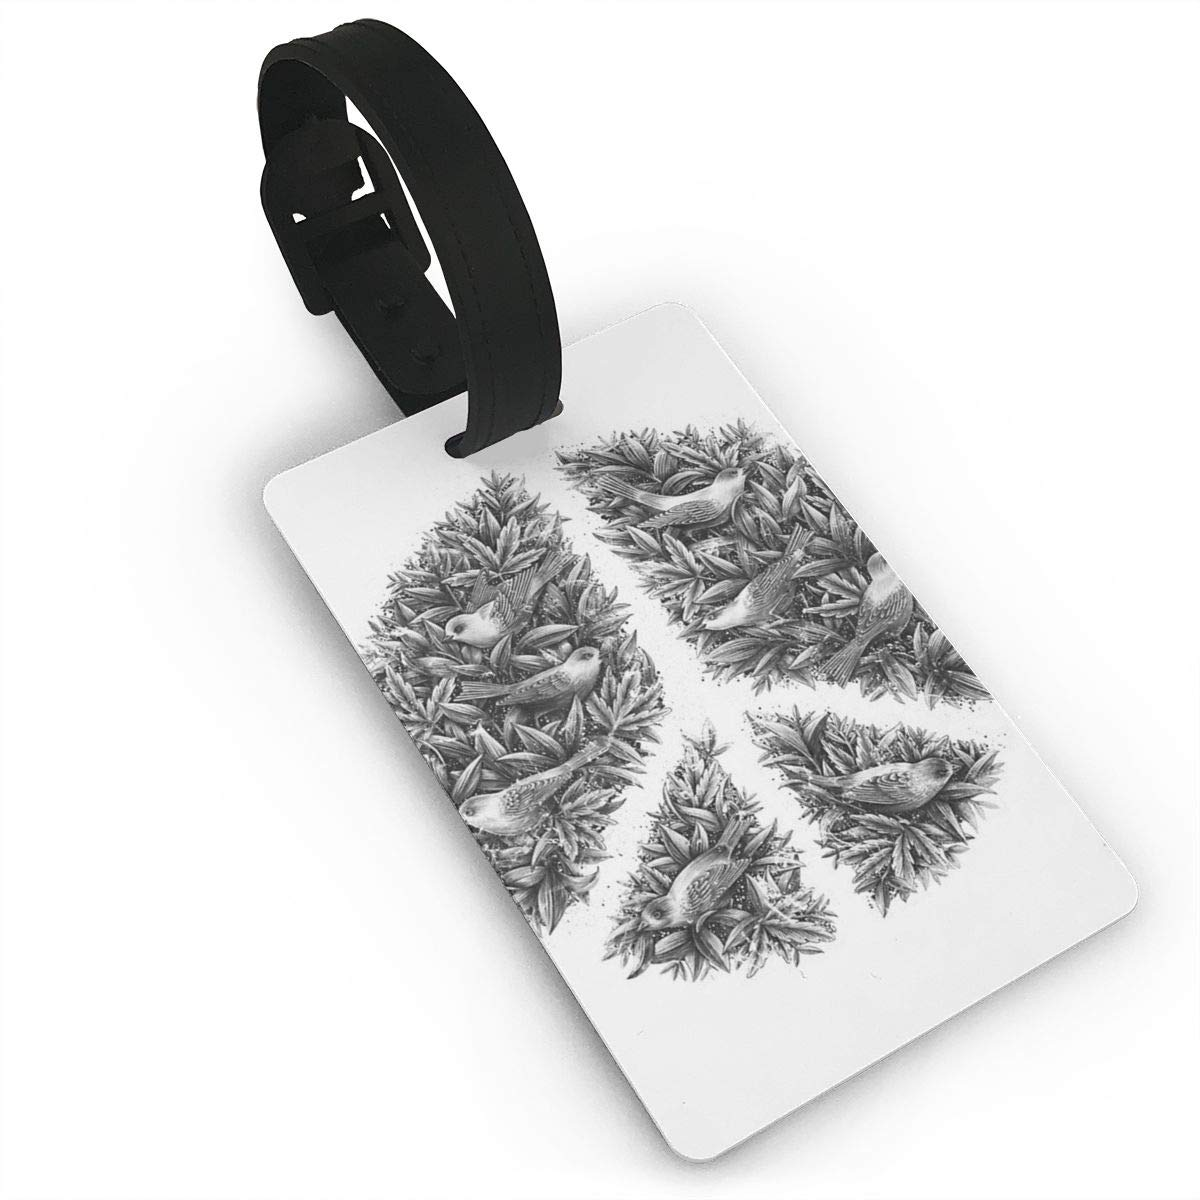 Peace Naturalis Luggage Tags Suitcase Labels Bag Travel Accessories Set of 2